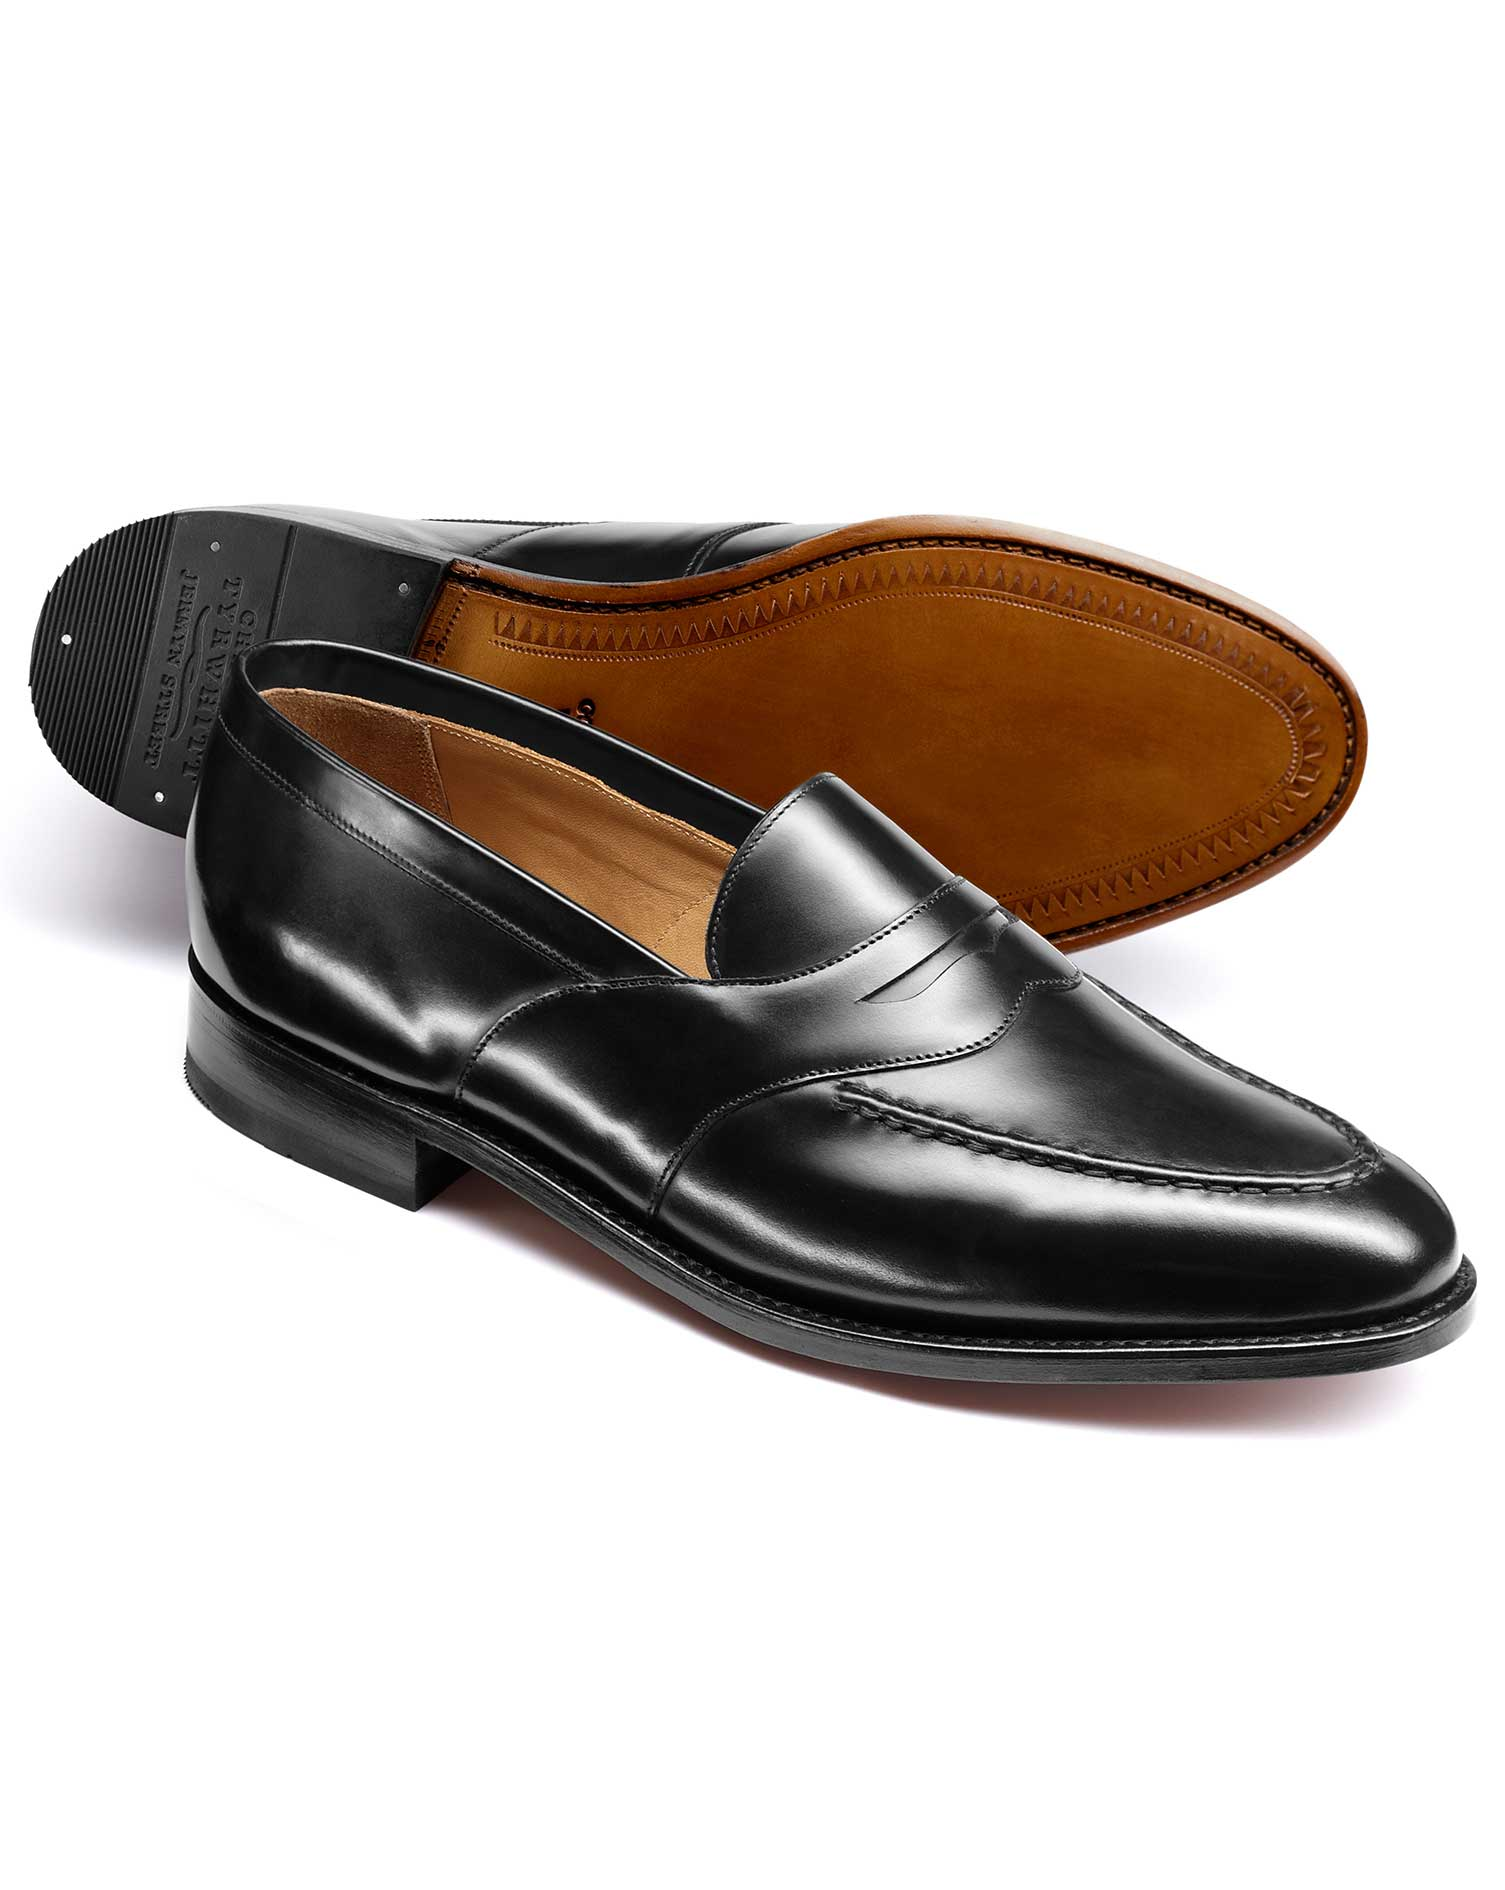 Black Allet Loafers Size 8 R by Charles Tyrwhitt